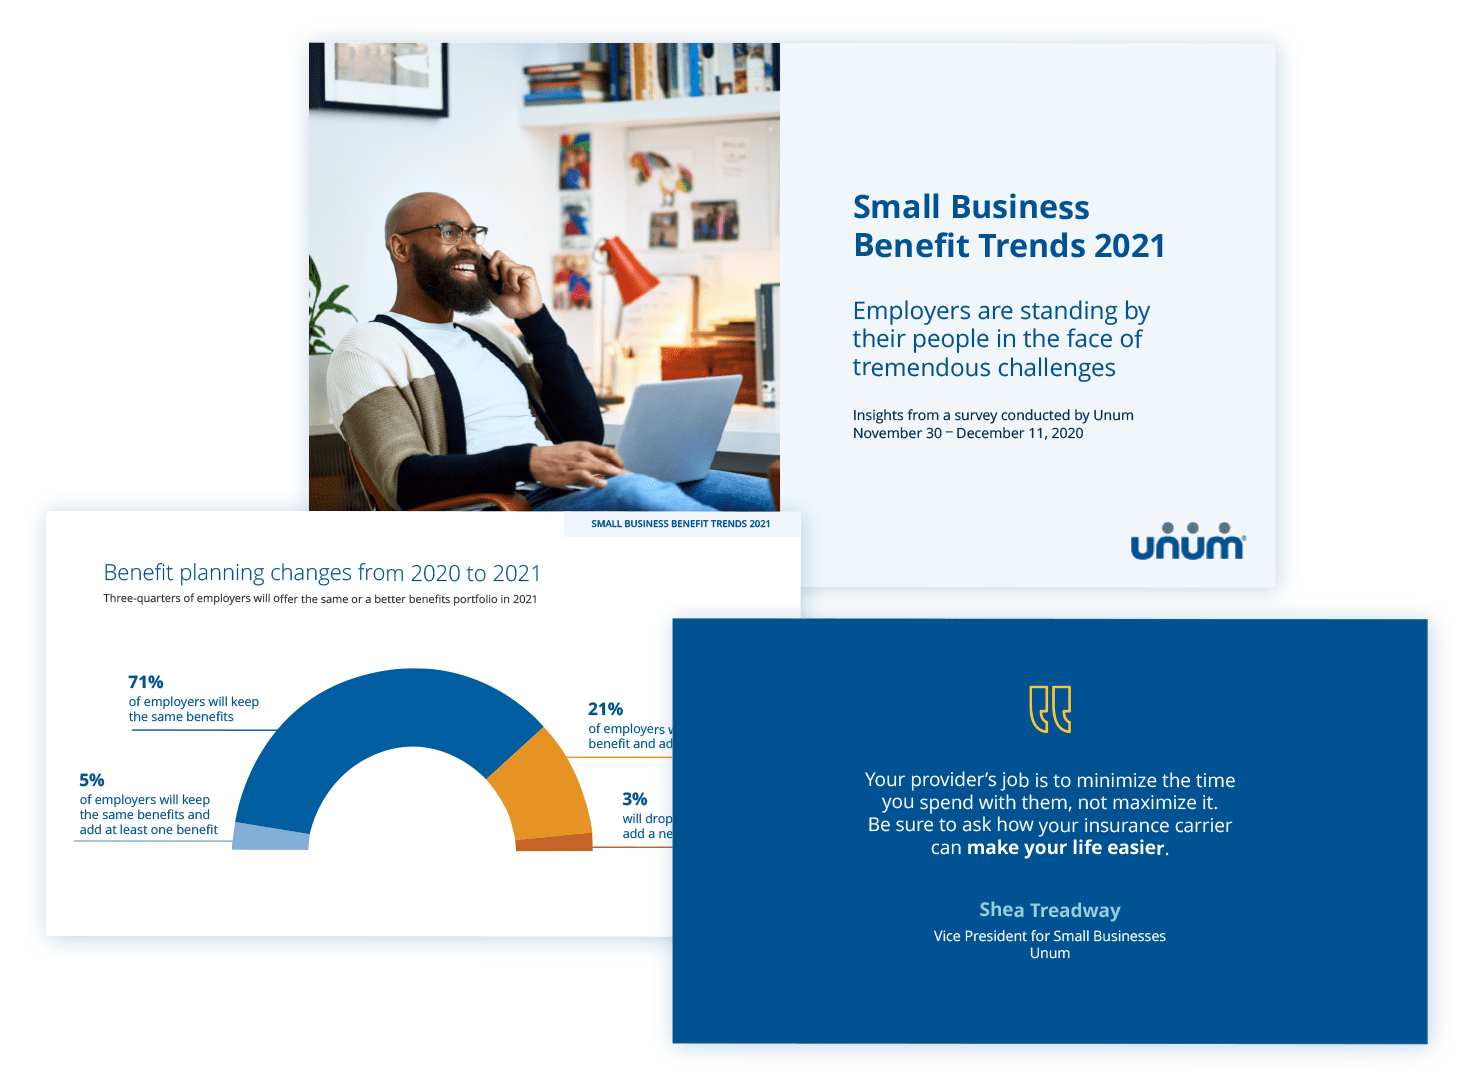 overview images of small business trend 2021information